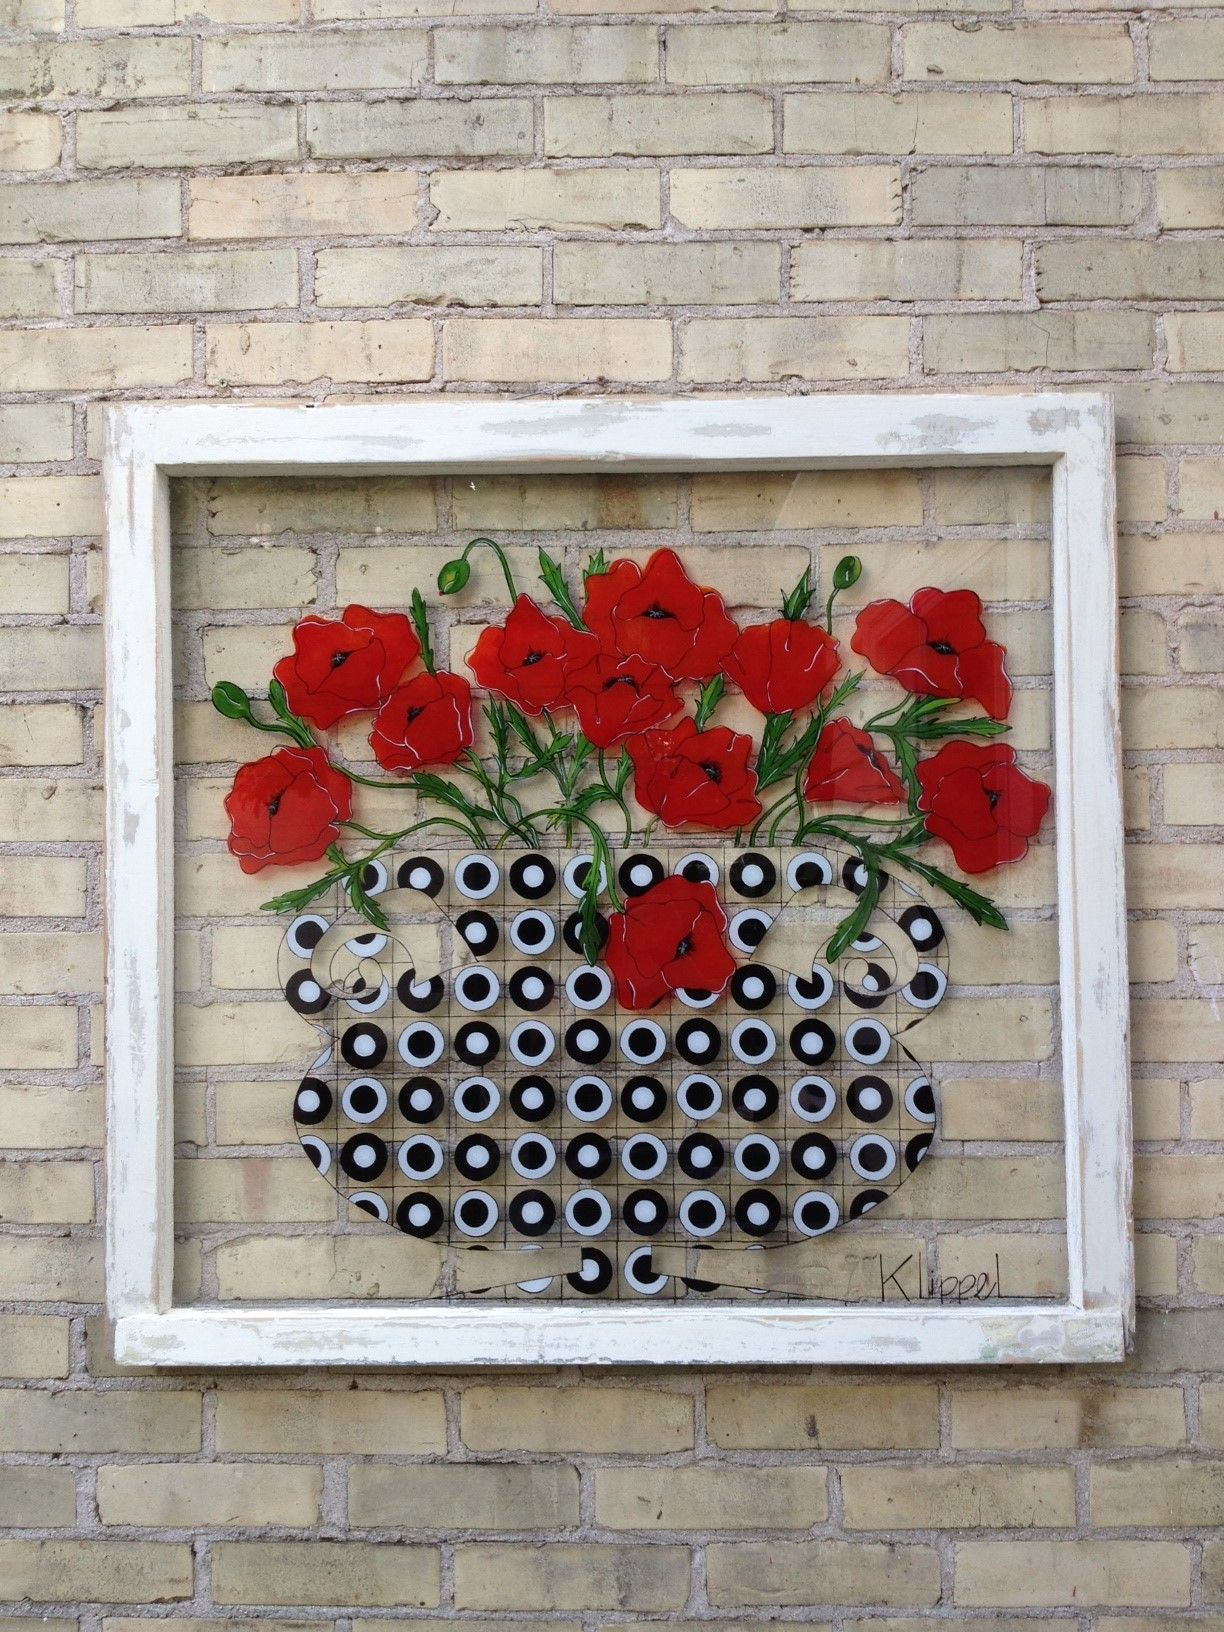 101 hand painted window using acrylic paint on back of glass. red